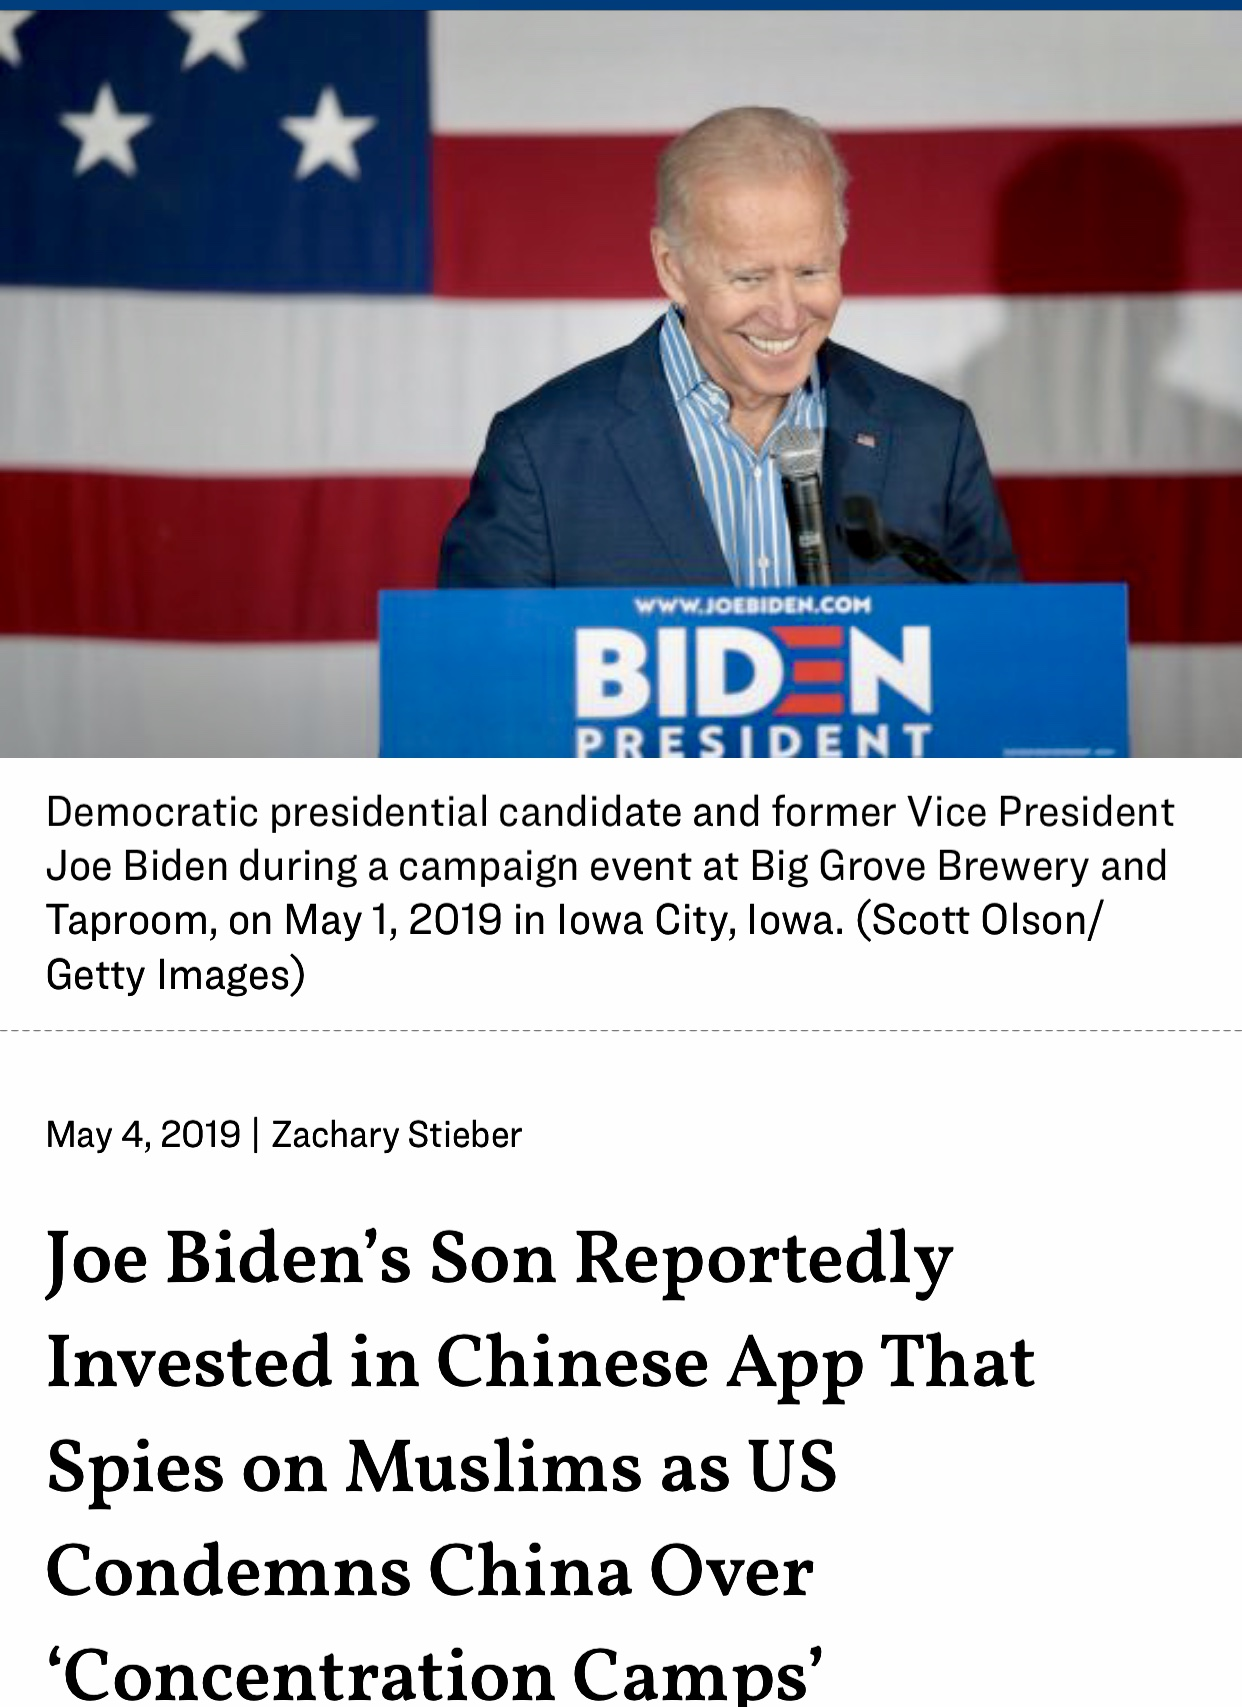 Joe Biden's Son Reportedly Invested in Chinese App That Spies on Muslims as US Condemns China Over 'Concentration Camps'